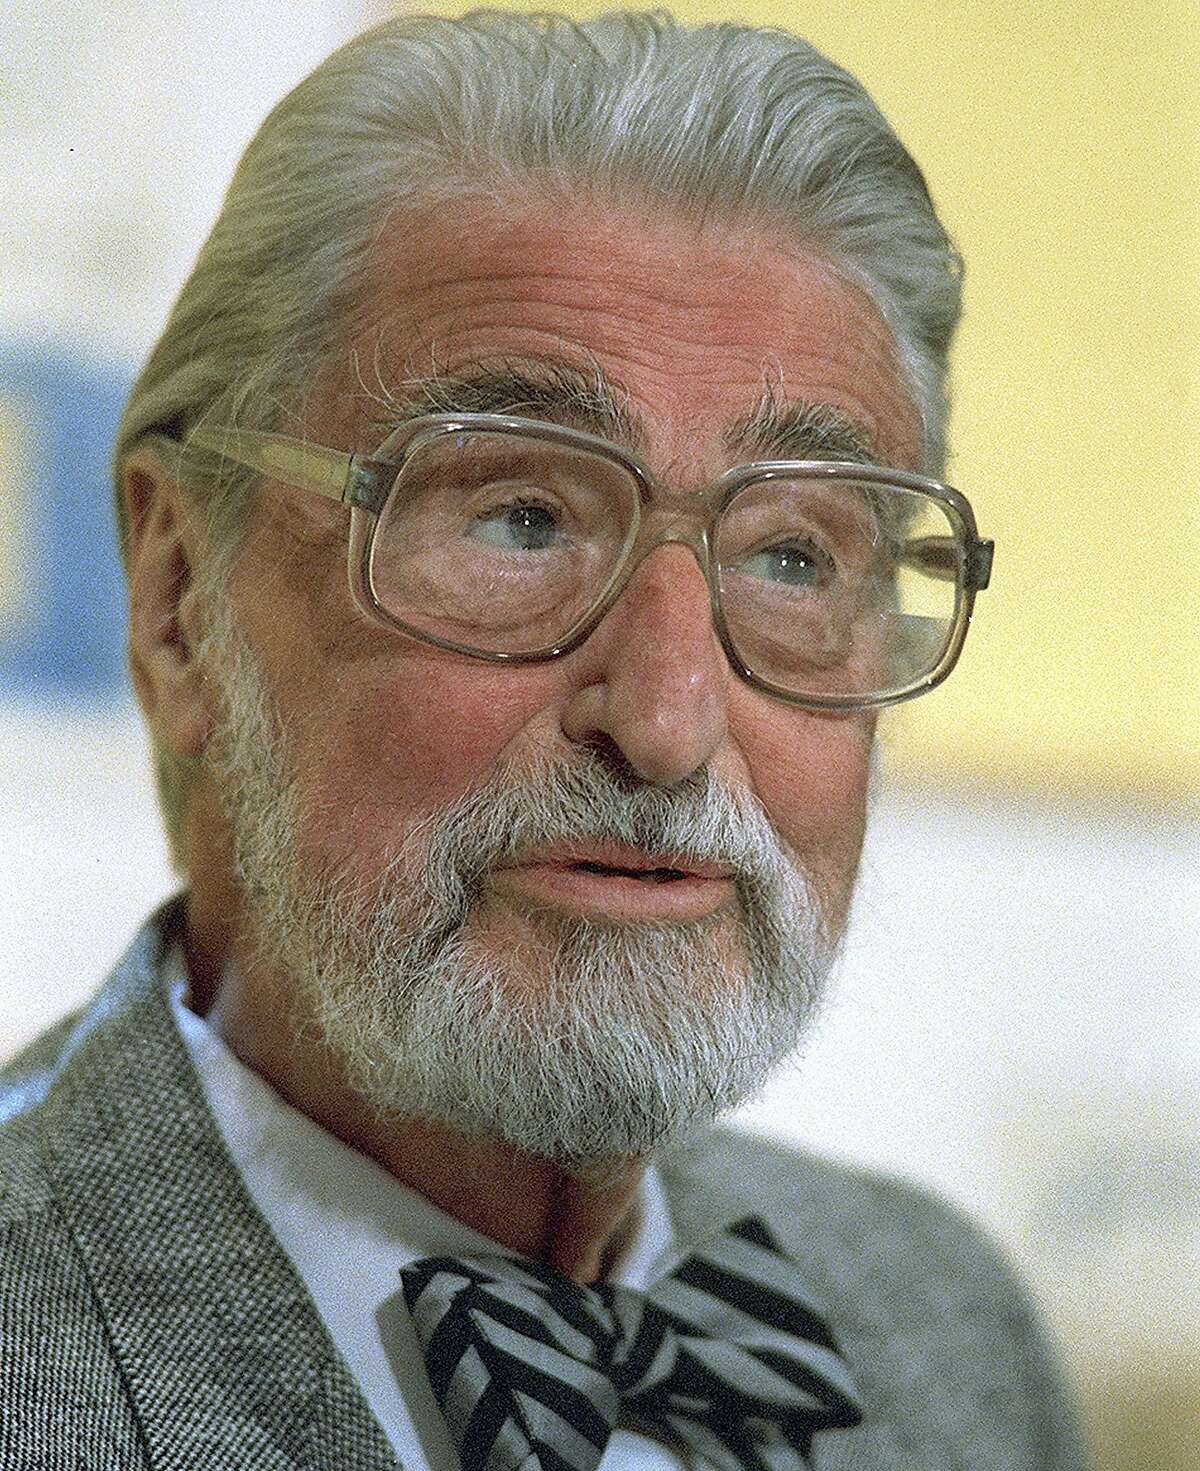 Theodore Seuss Geisel, known as Dr. Seuss, published